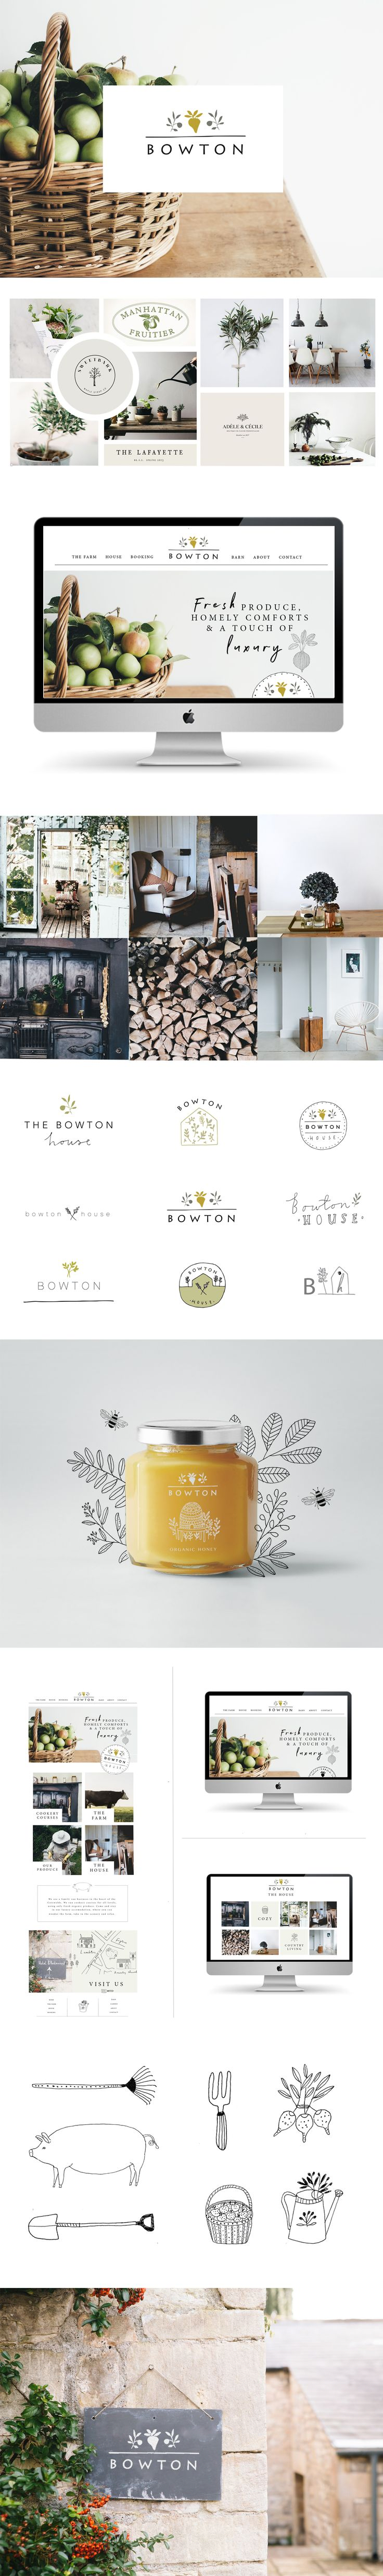 Branding and website by Ryn Frank